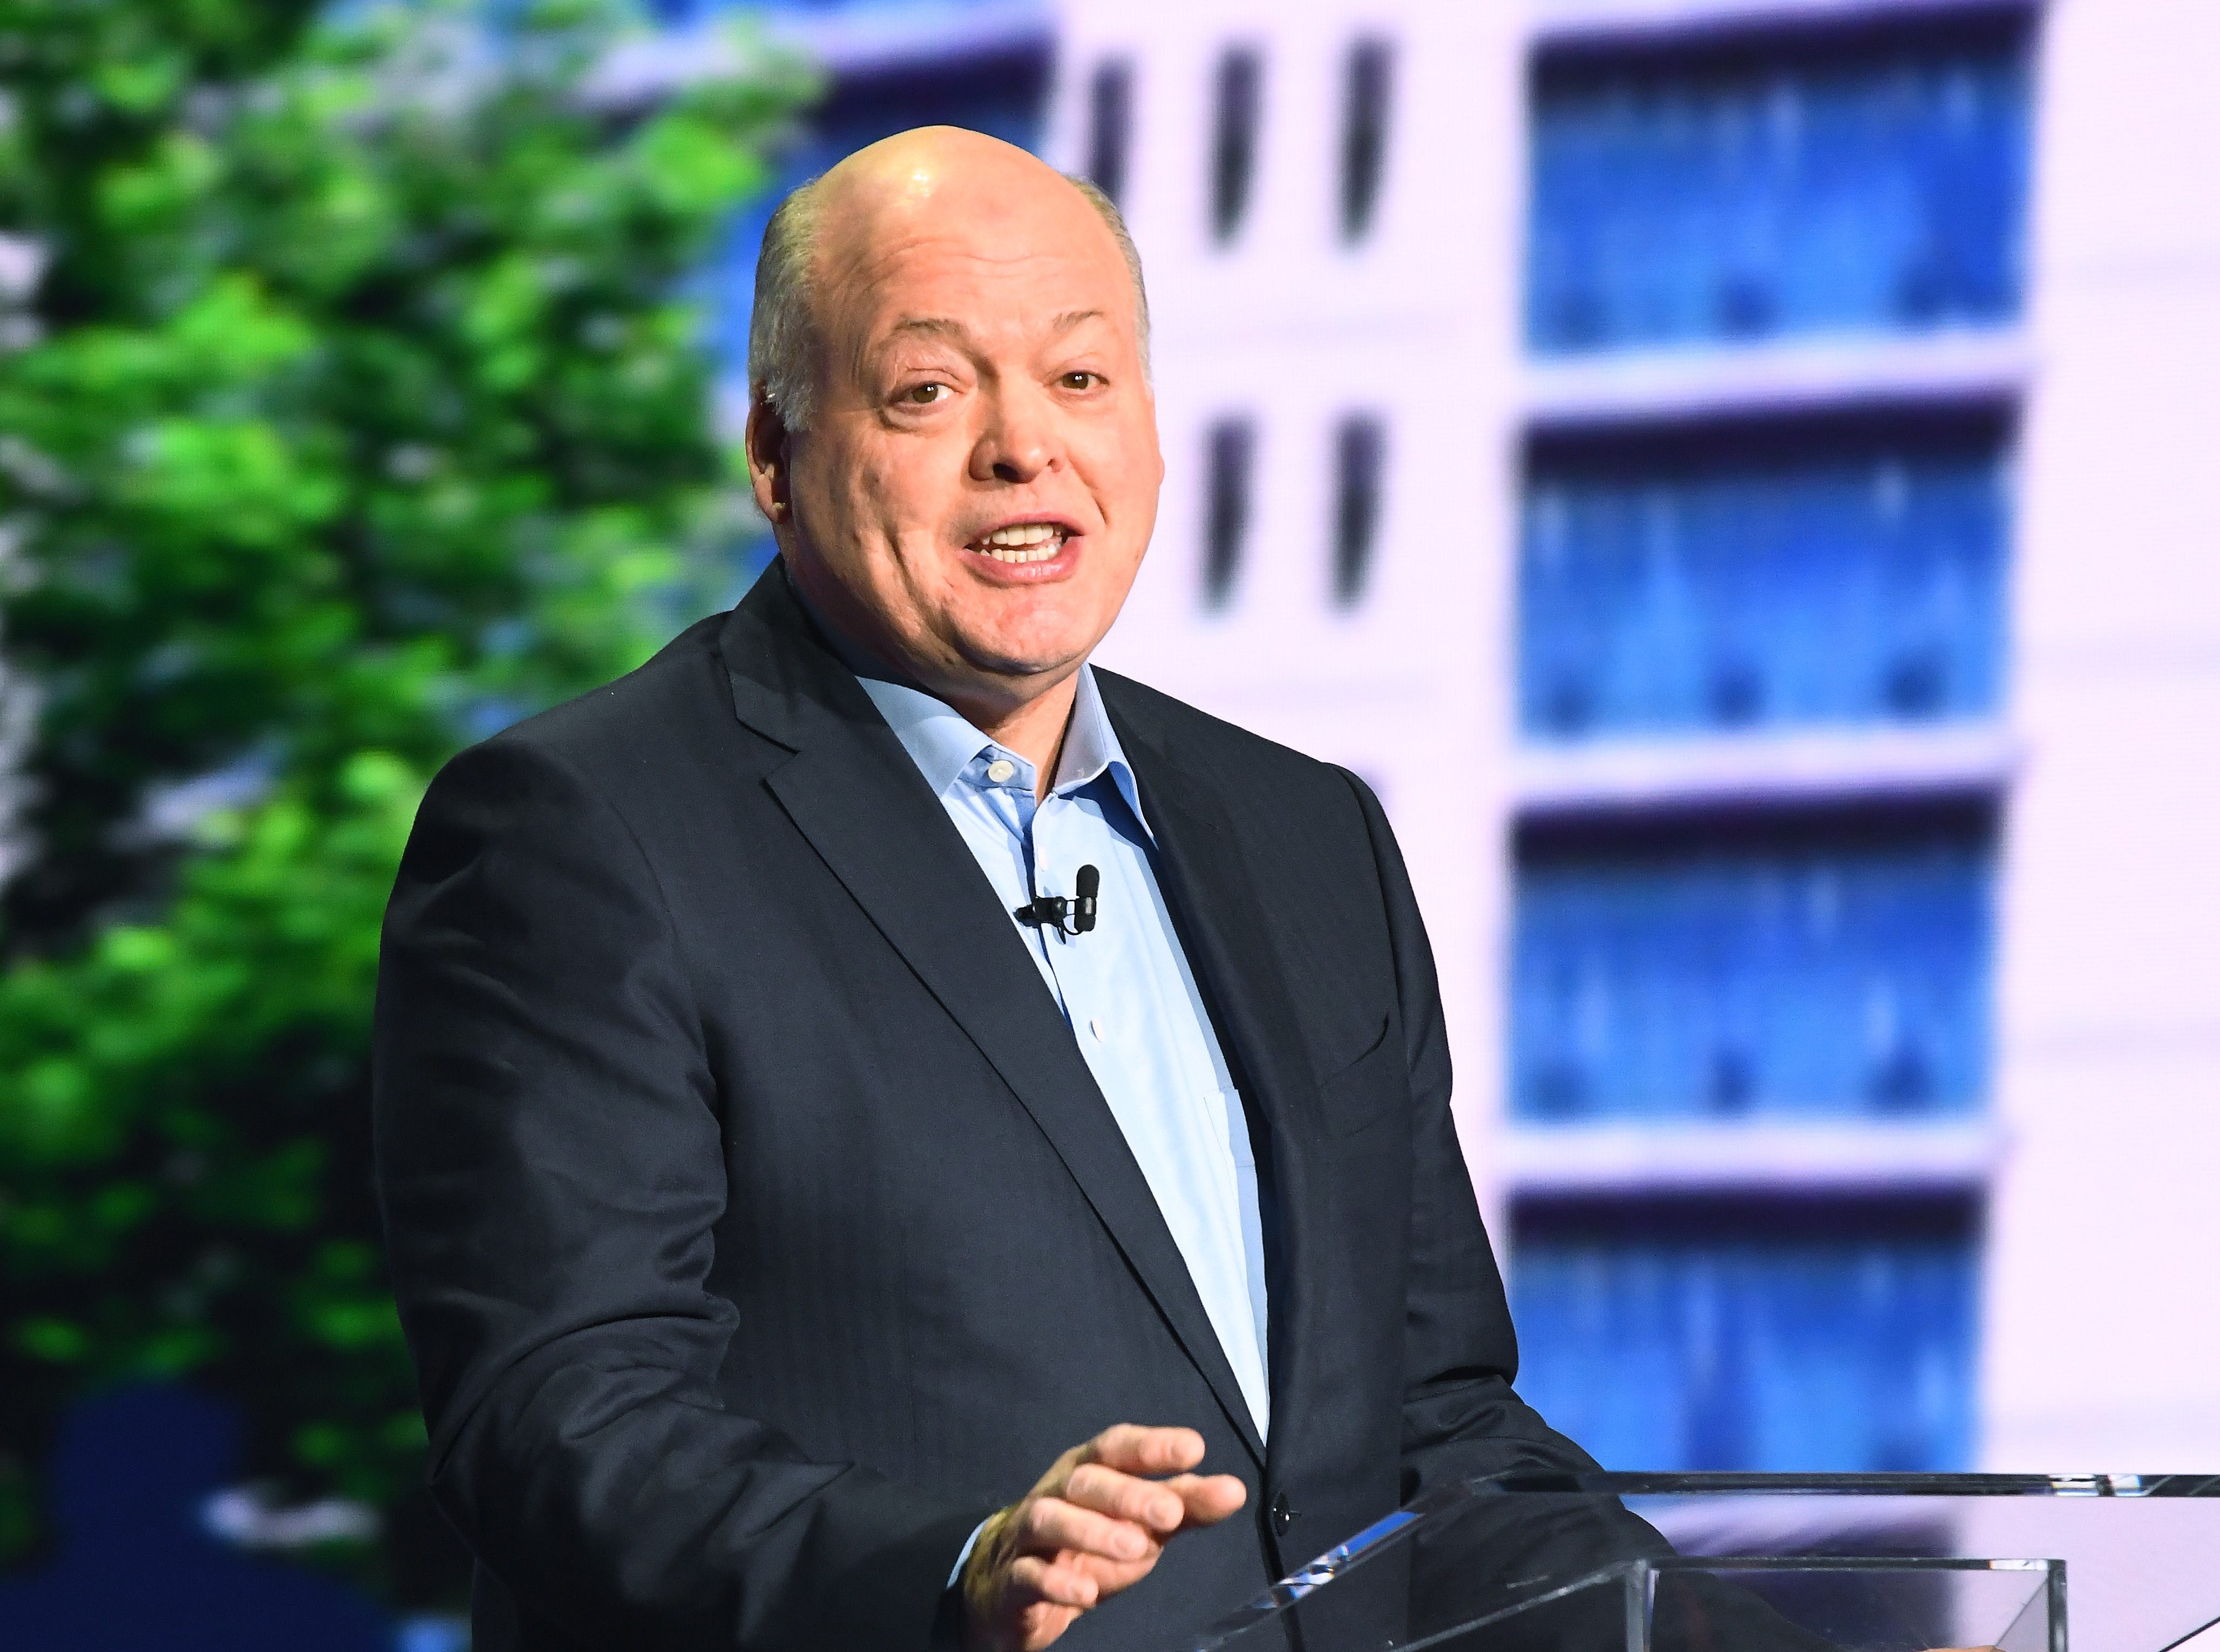 Ford President and CEO Jim Hackett speaks on stage during the Ford Explorer Hybrid reveal.